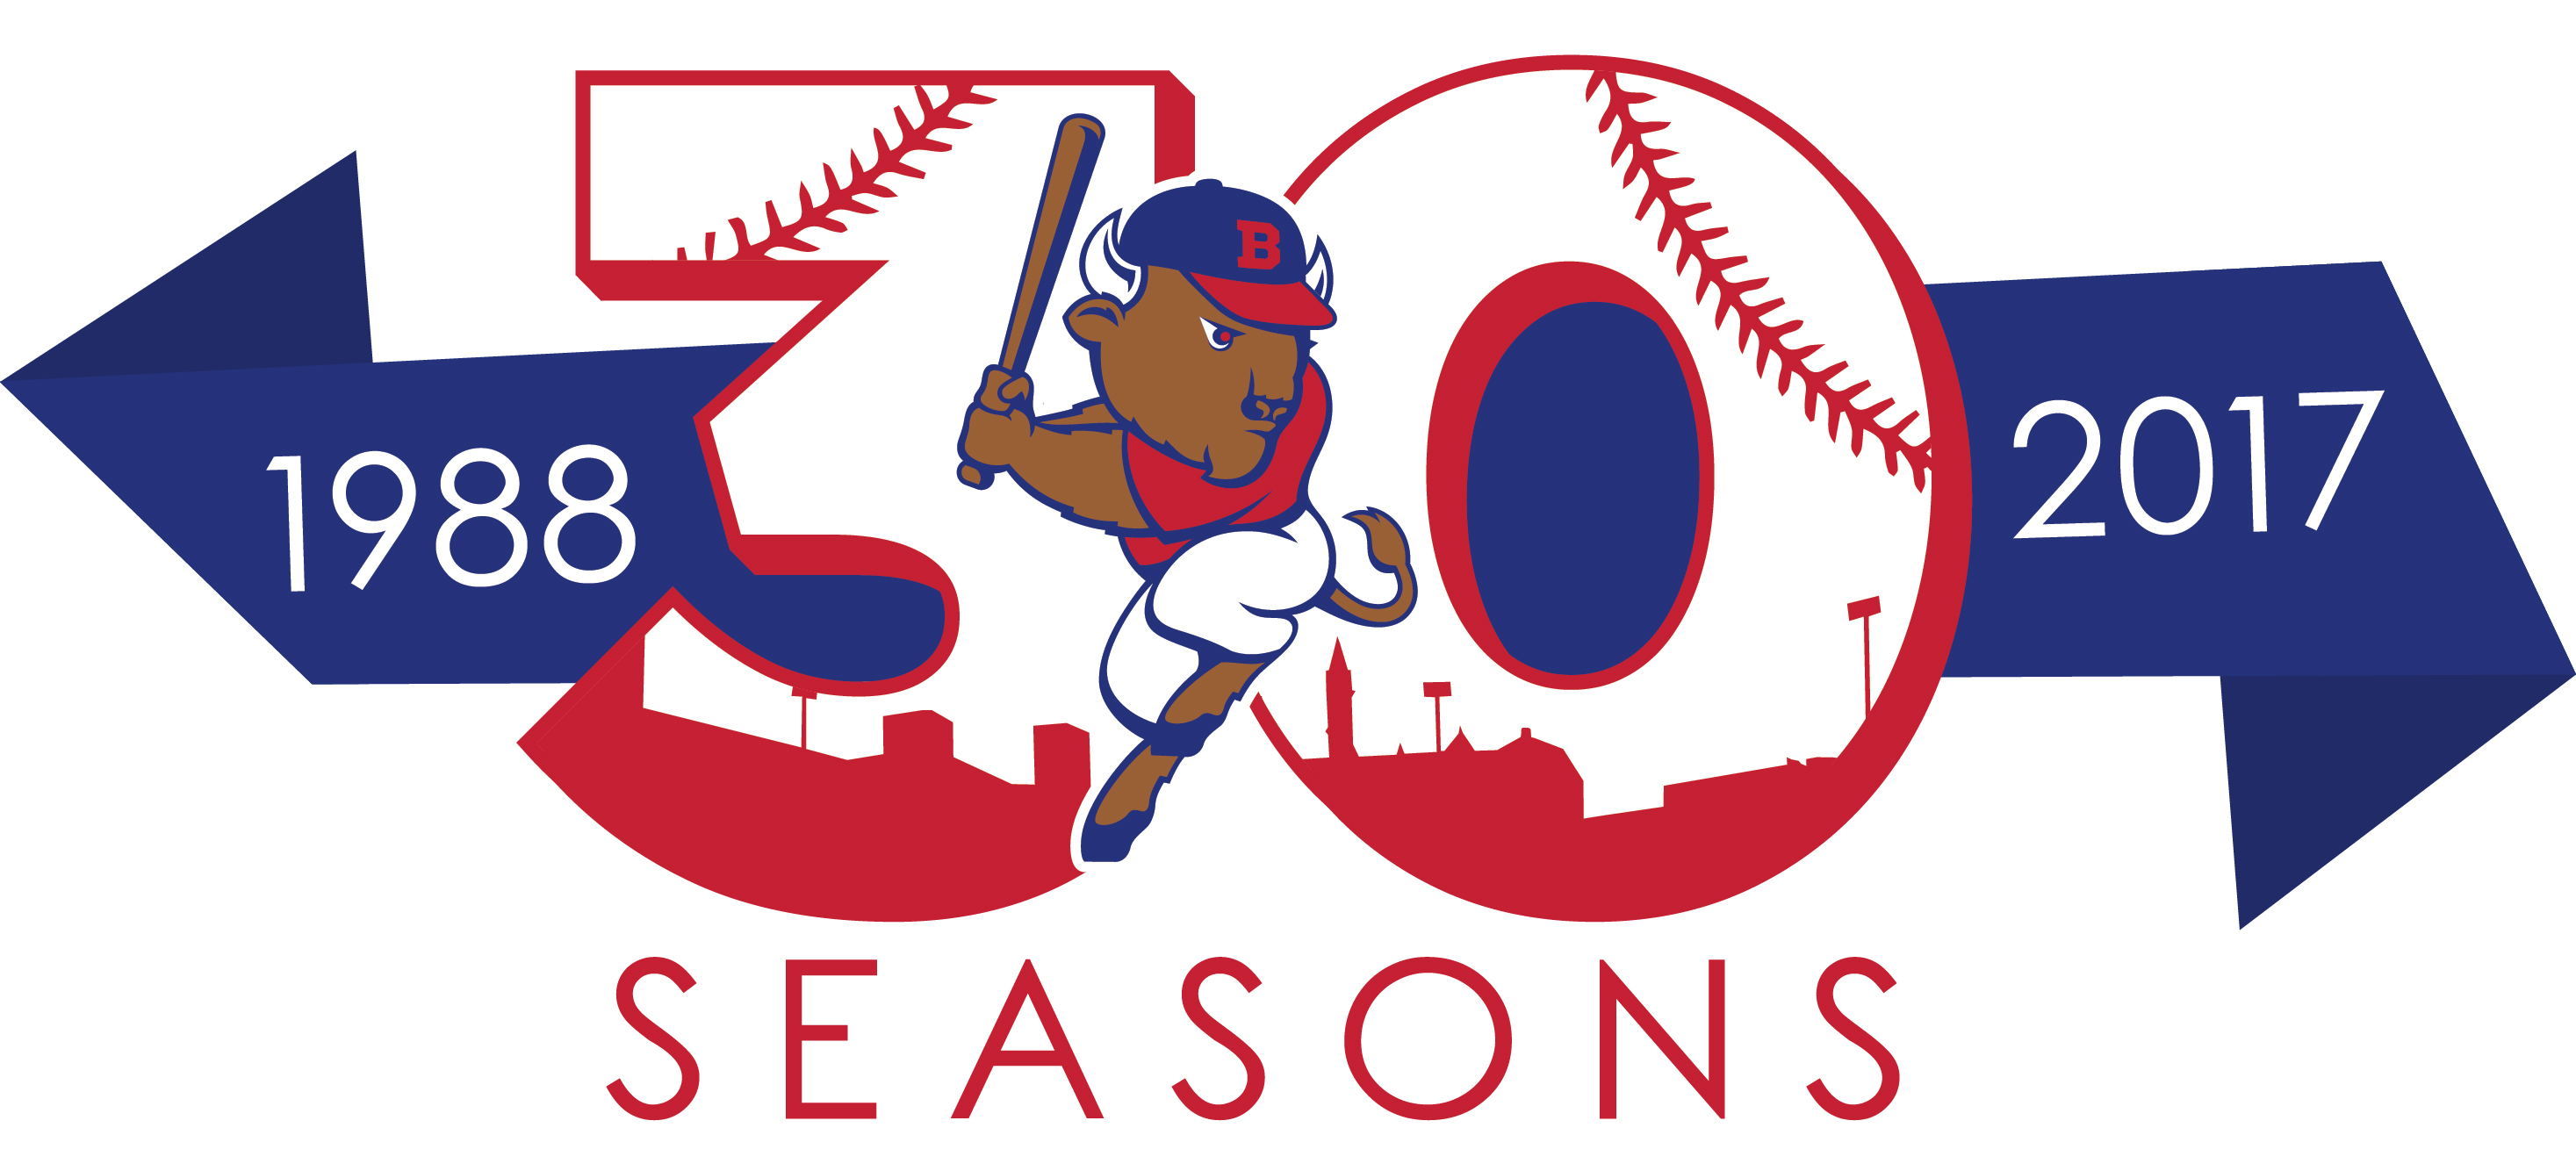 The Bisons' anniversary logo will be used throughout the 2017 season, their 30th in Coca-Cola Field.